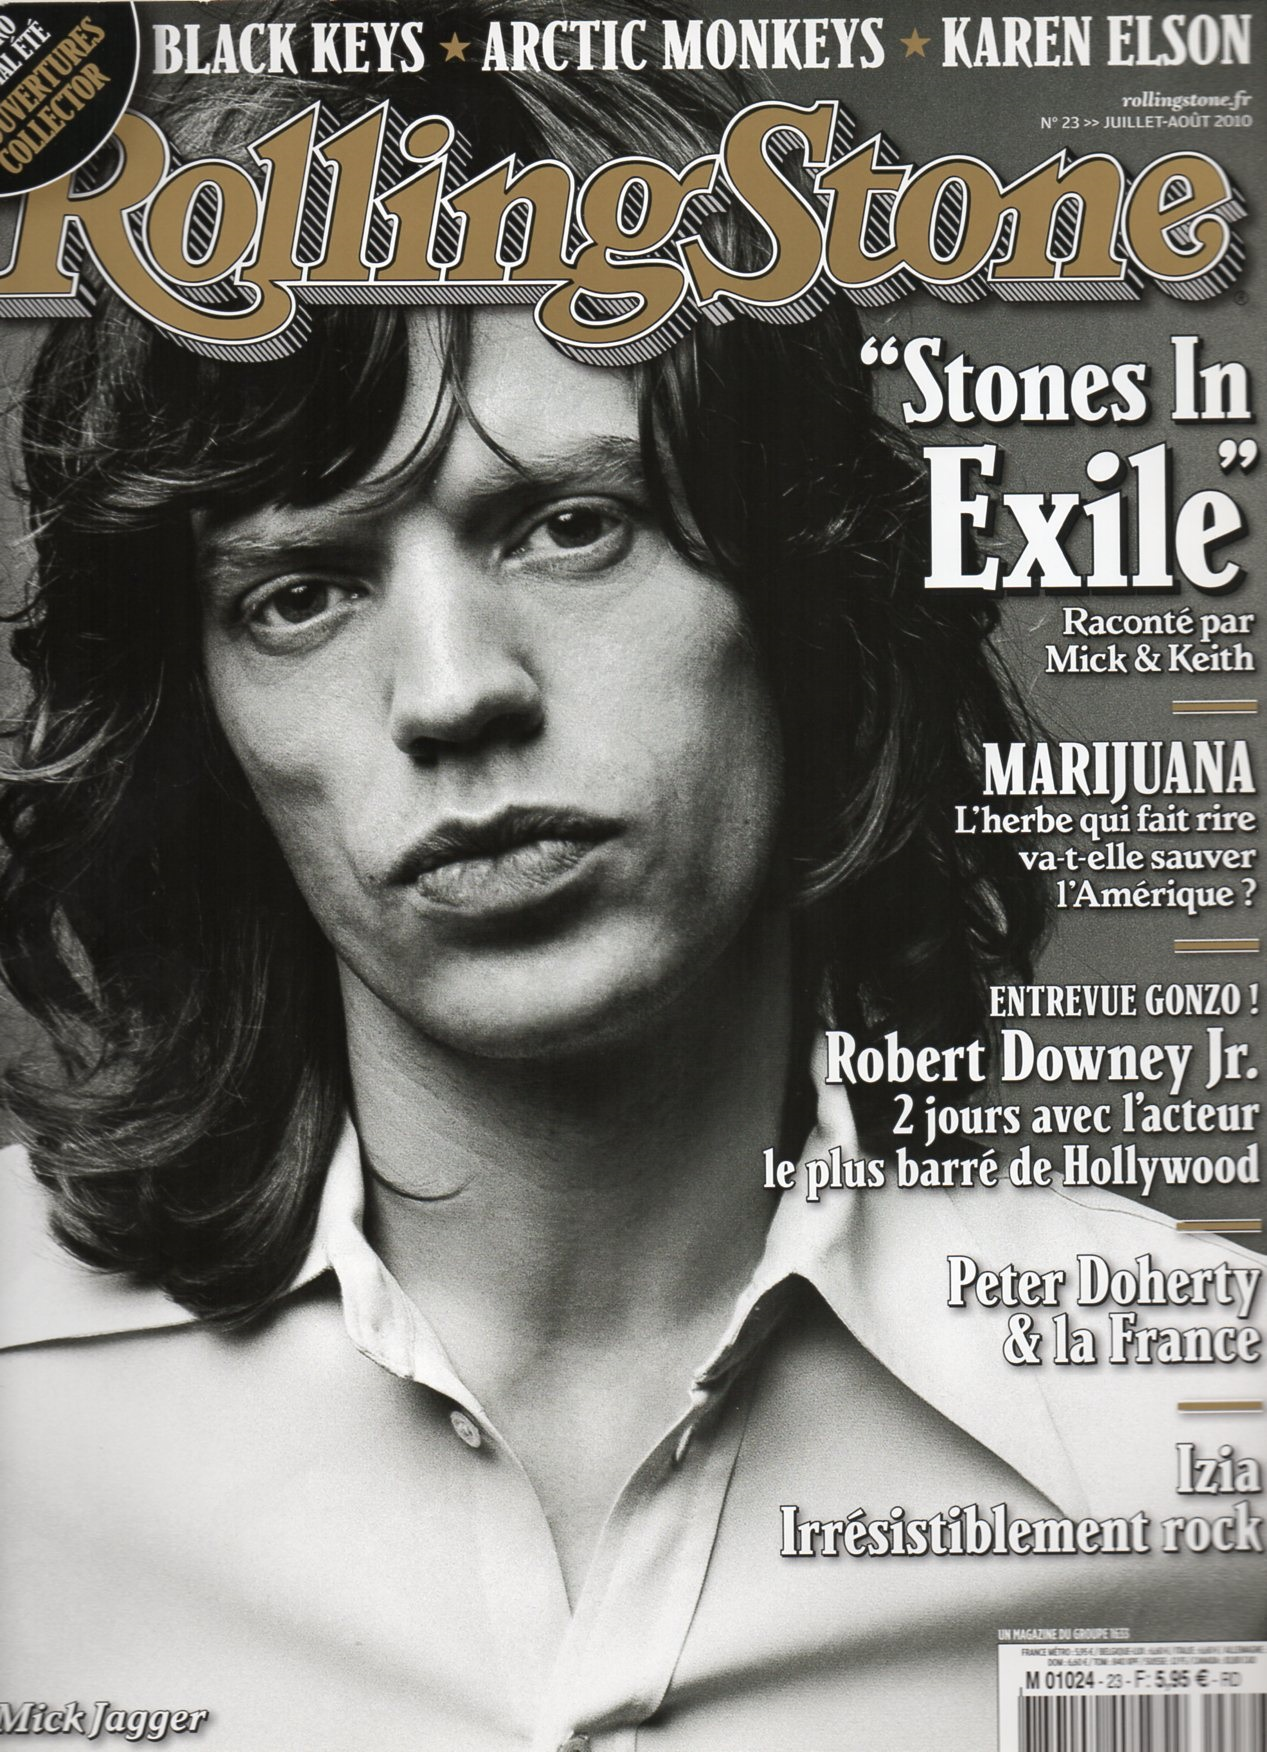 ROLLING STONE N°23 JUIL-AOUT 2010001.jpg